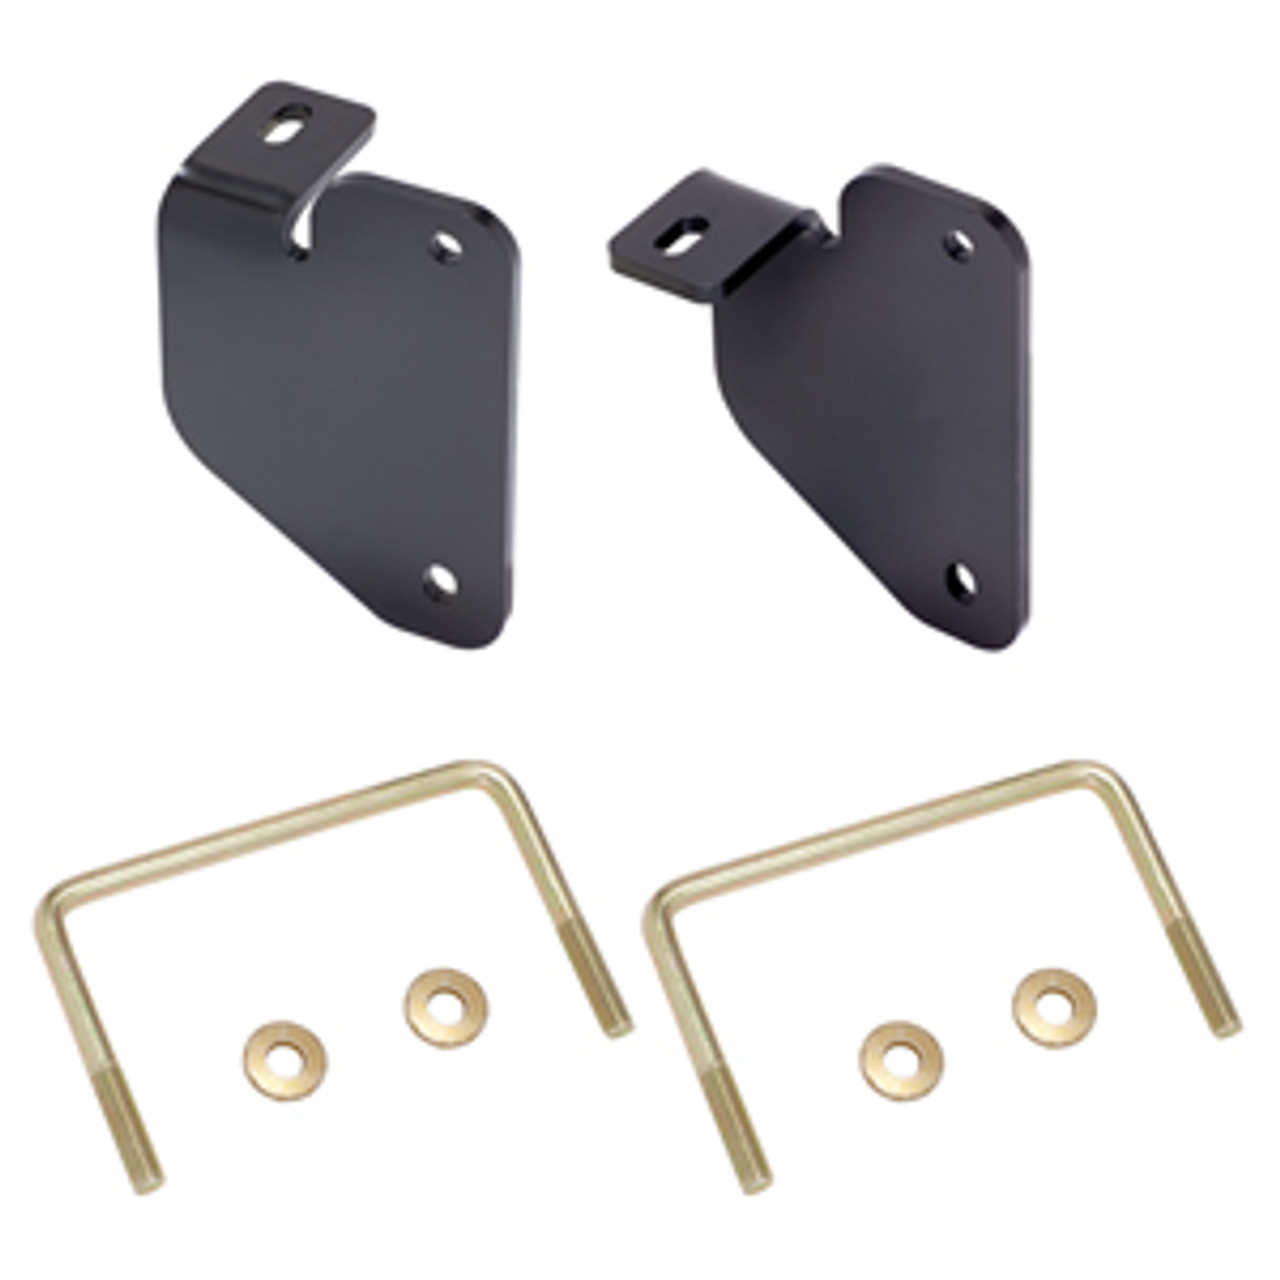 58520 --- Fifth Wheel Trailer Hitch Bracket Kit for 2013-2018 Dodge Ram - Required Kit for Installation